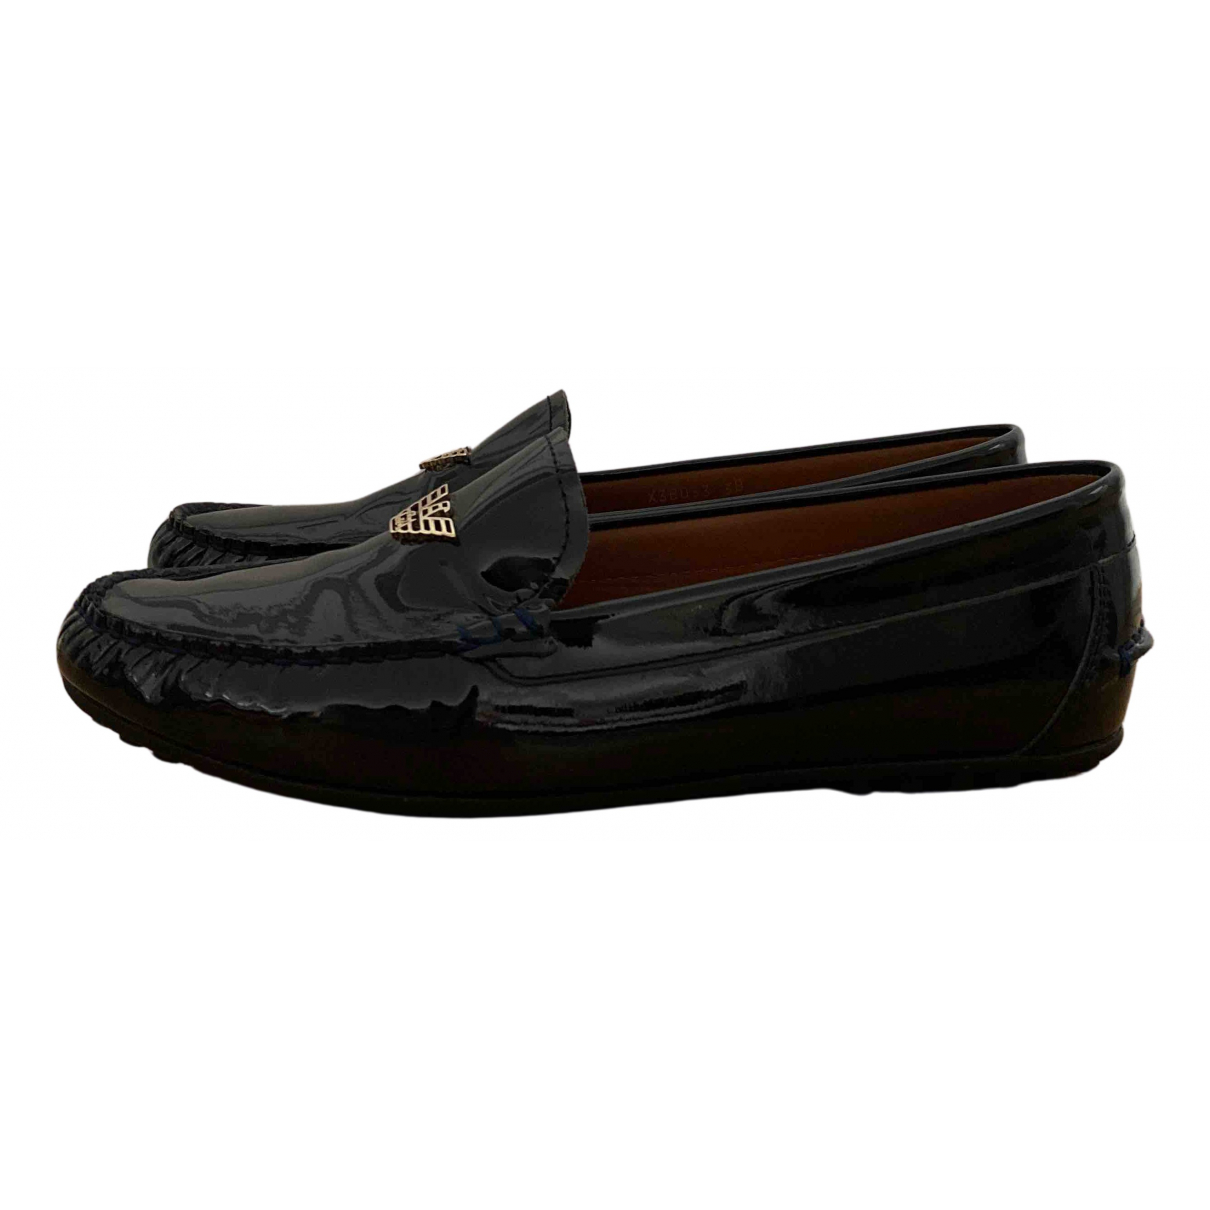 Emporio Armani N Navy Patent leather Flats for Women 38 EU